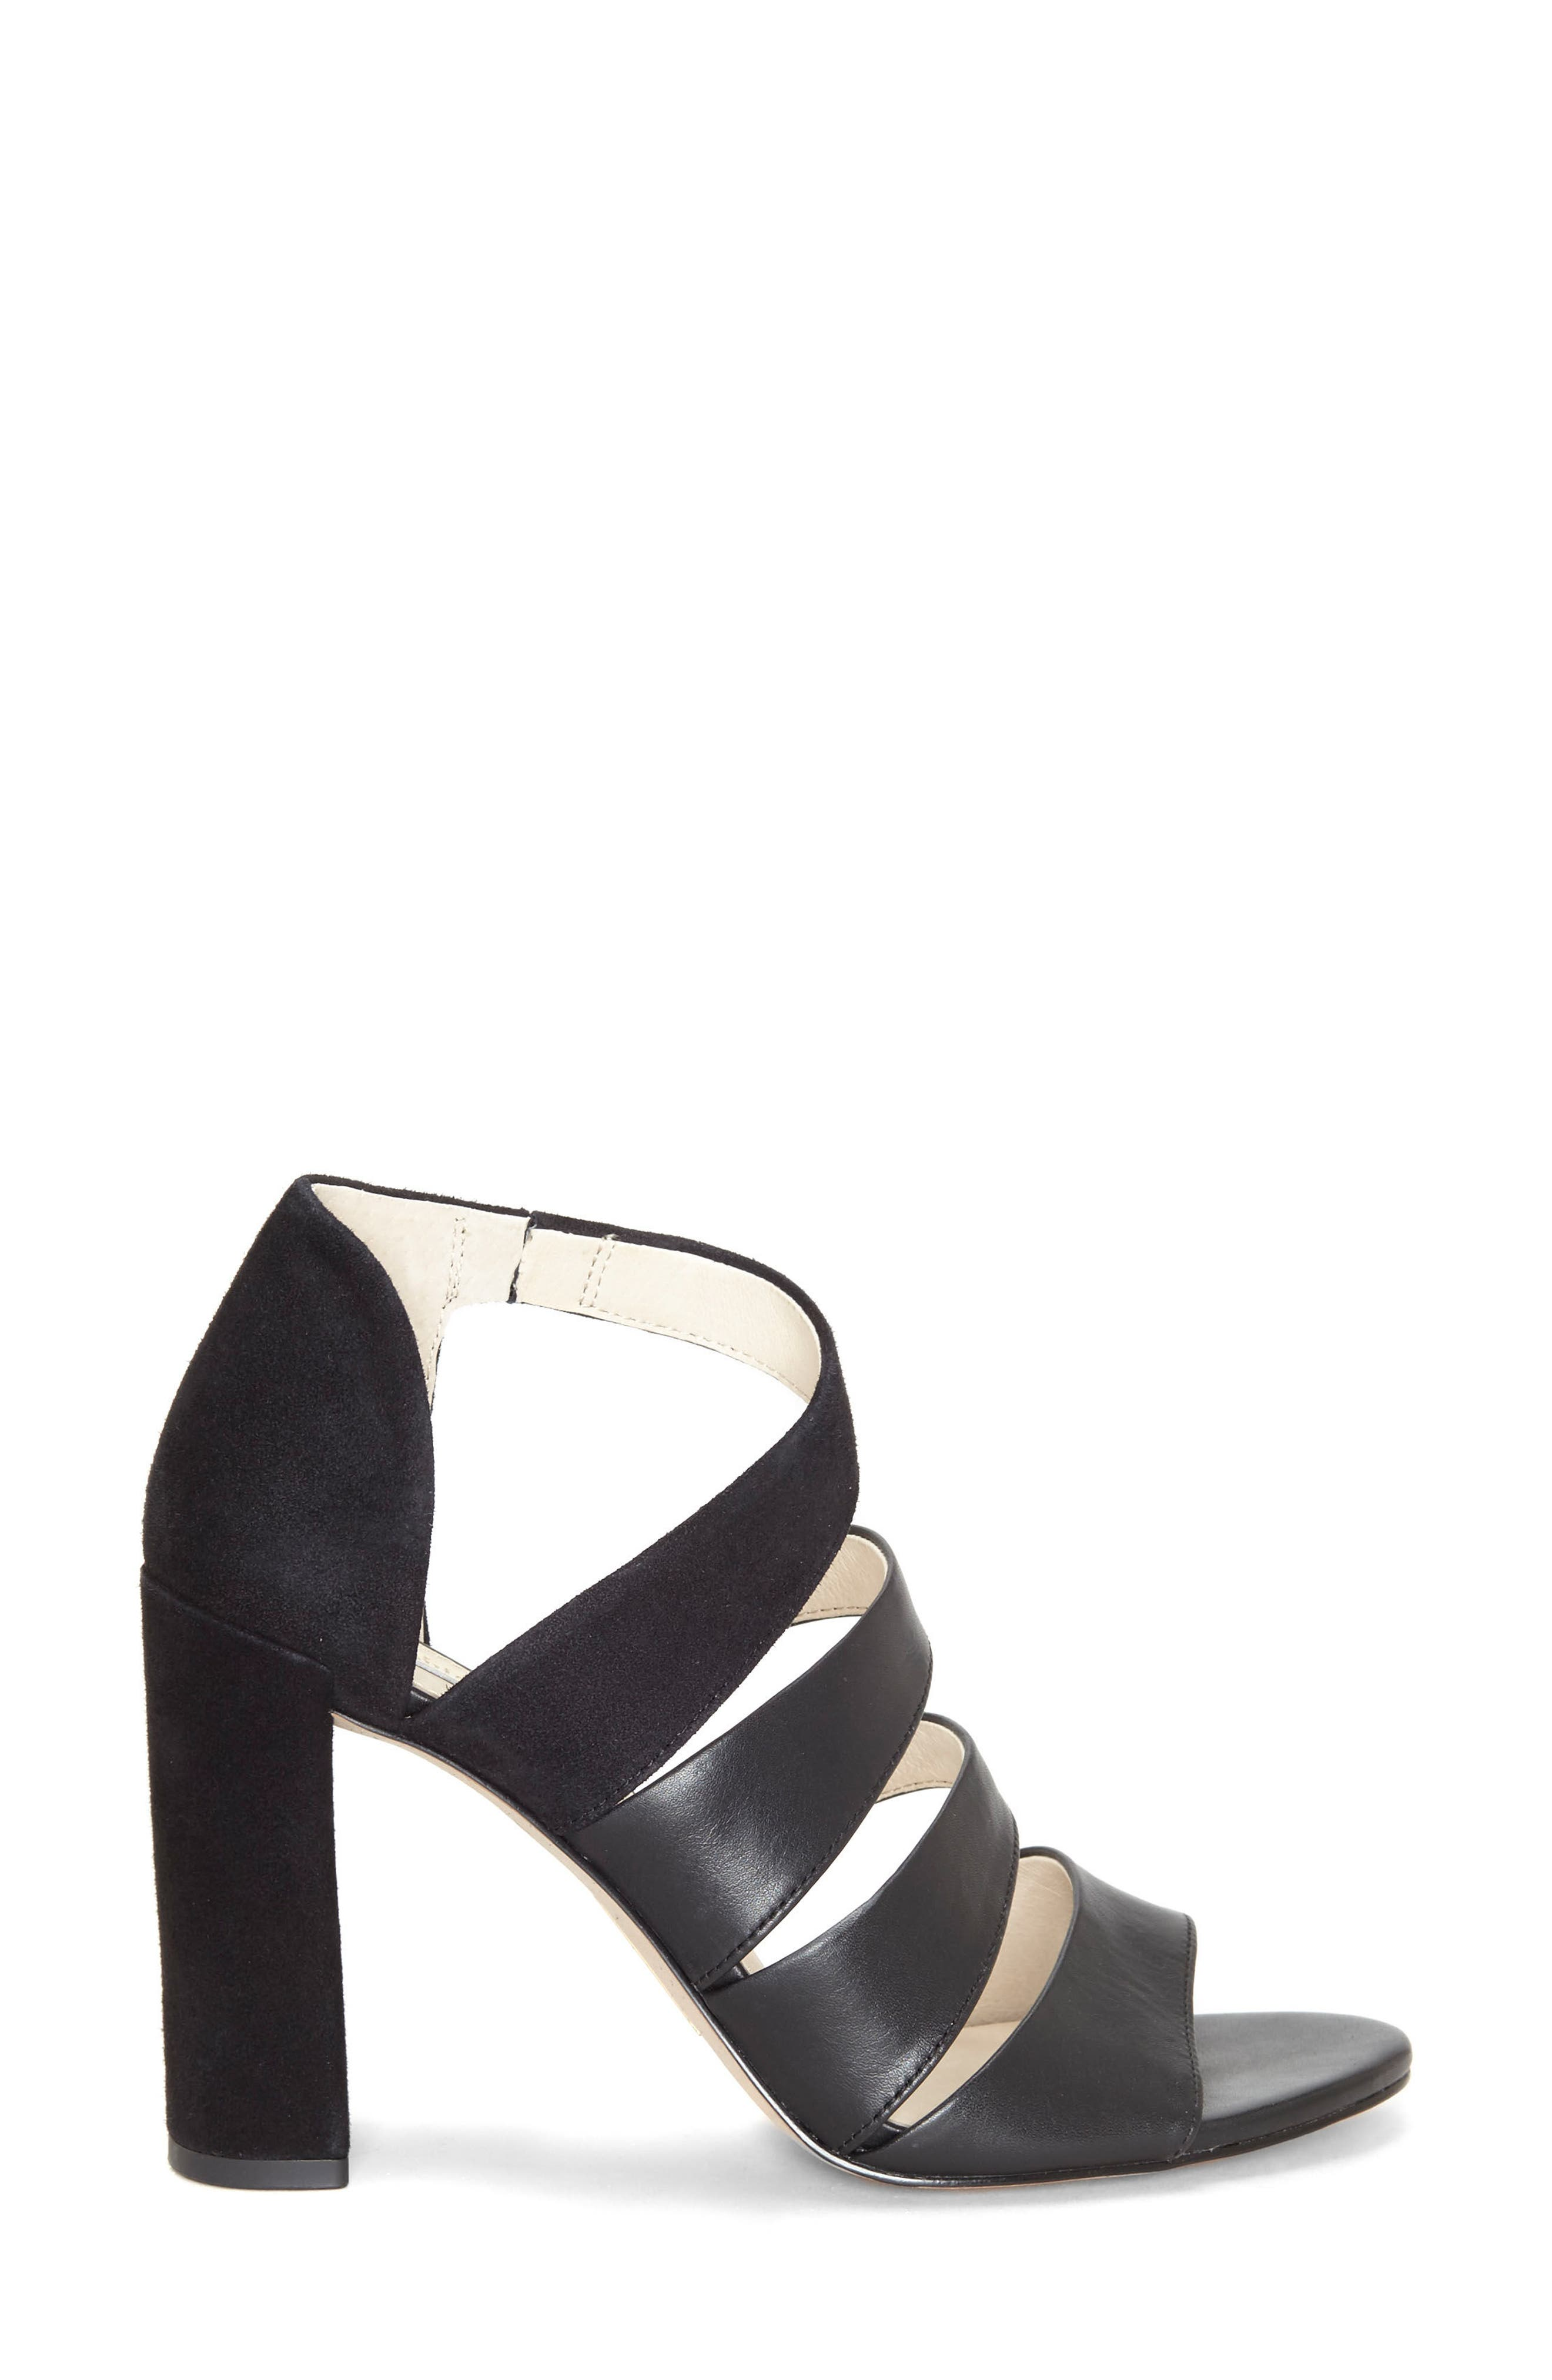 Alternate Image 3  - Louise et Cie Kainey Strappy Sandal (Women)